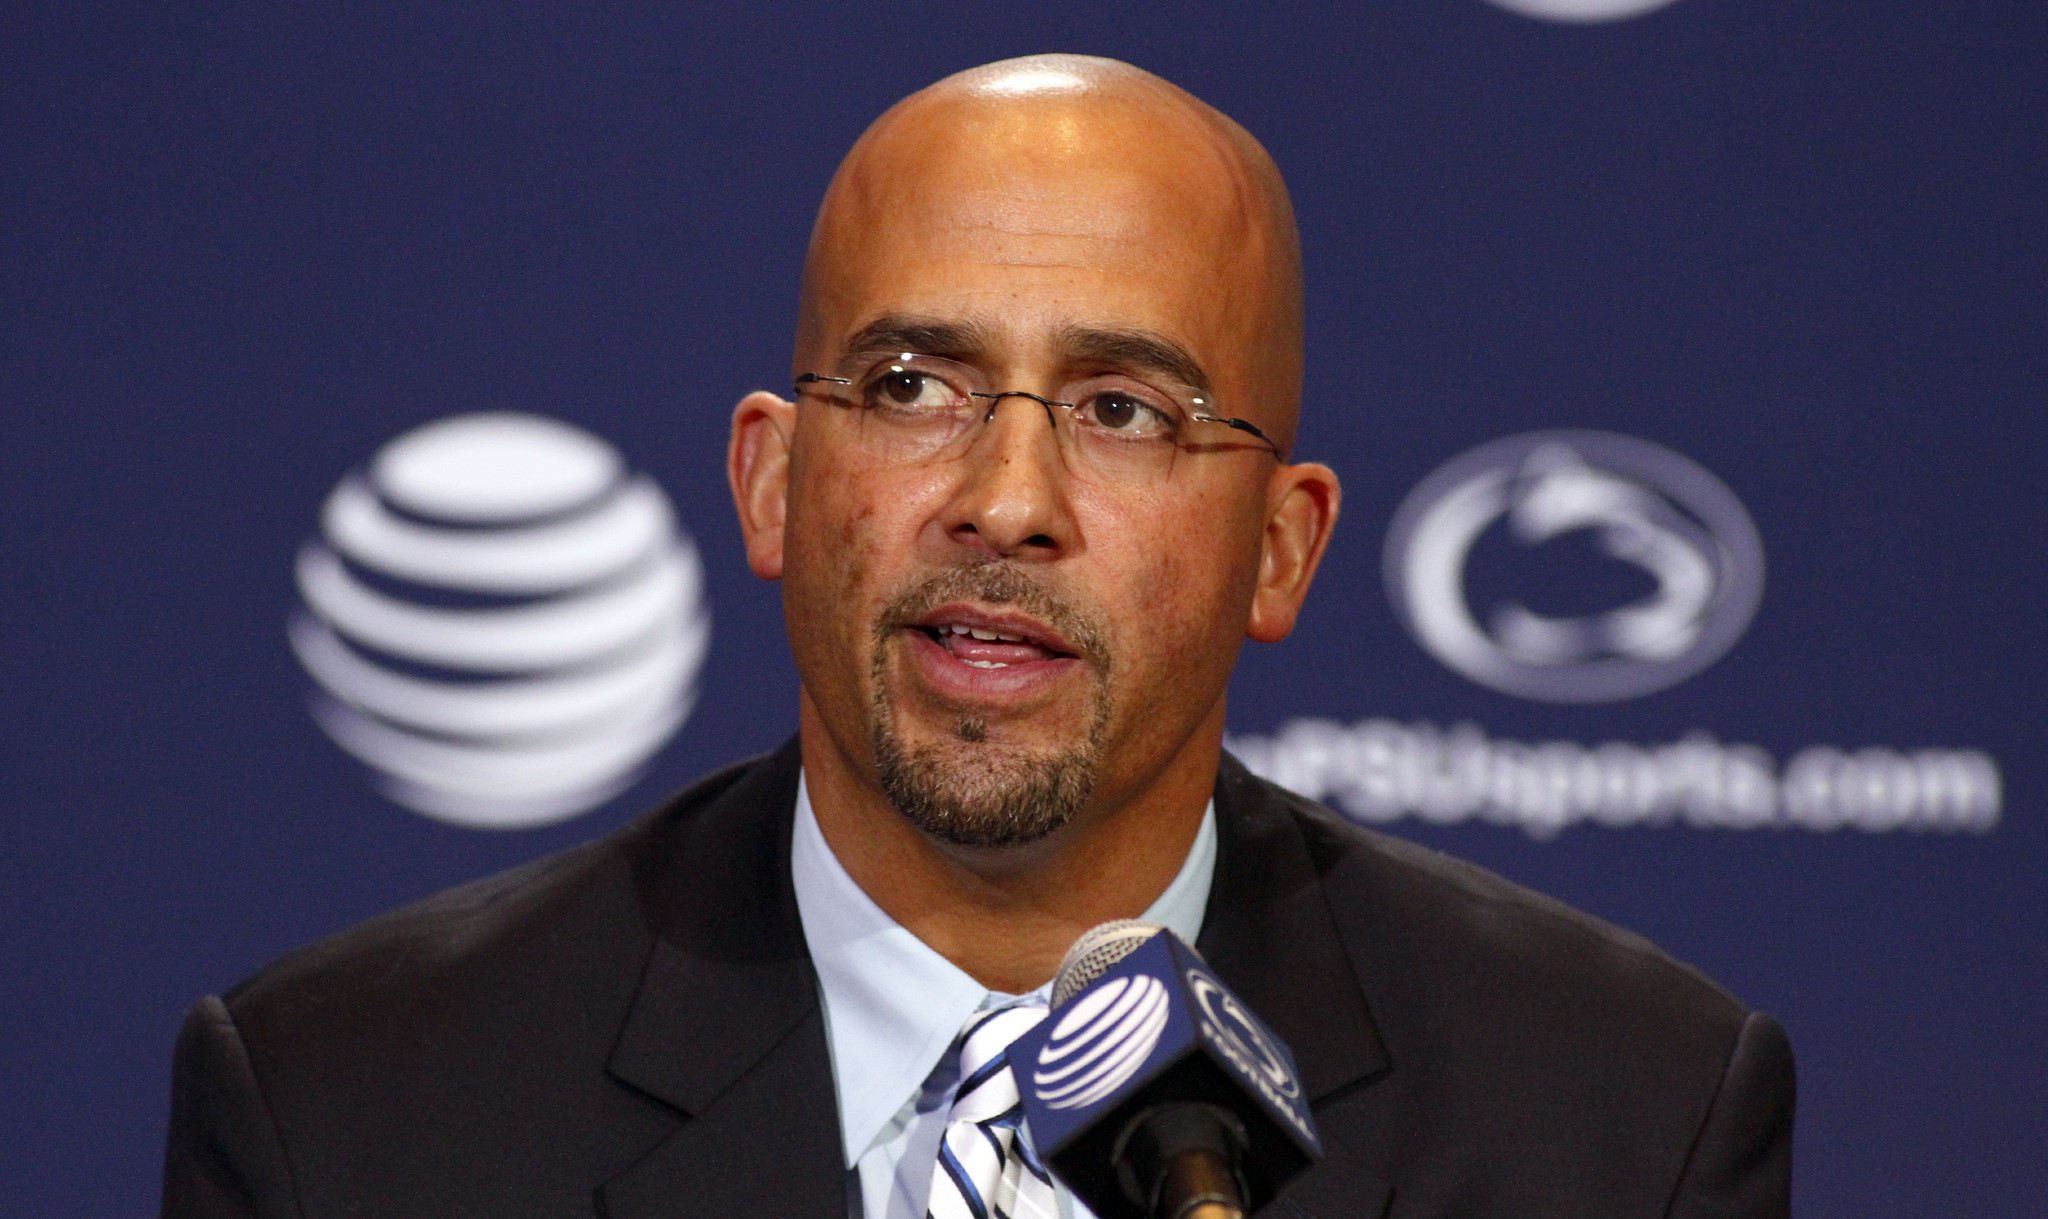 Penn State says 4 football players have left team